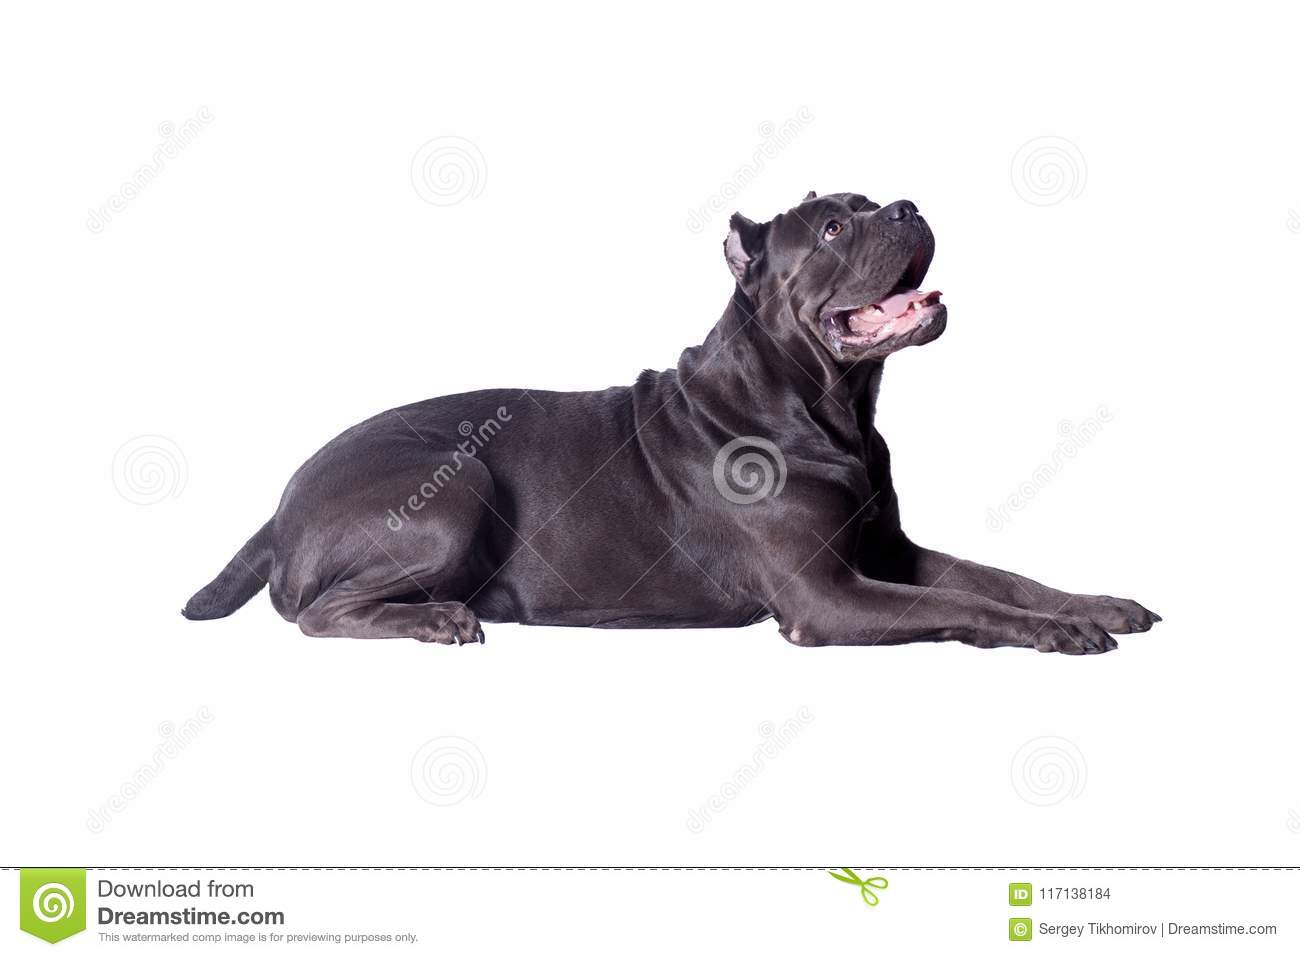 Cane corso or italian mastiff isolated on a white background. Pet animals.